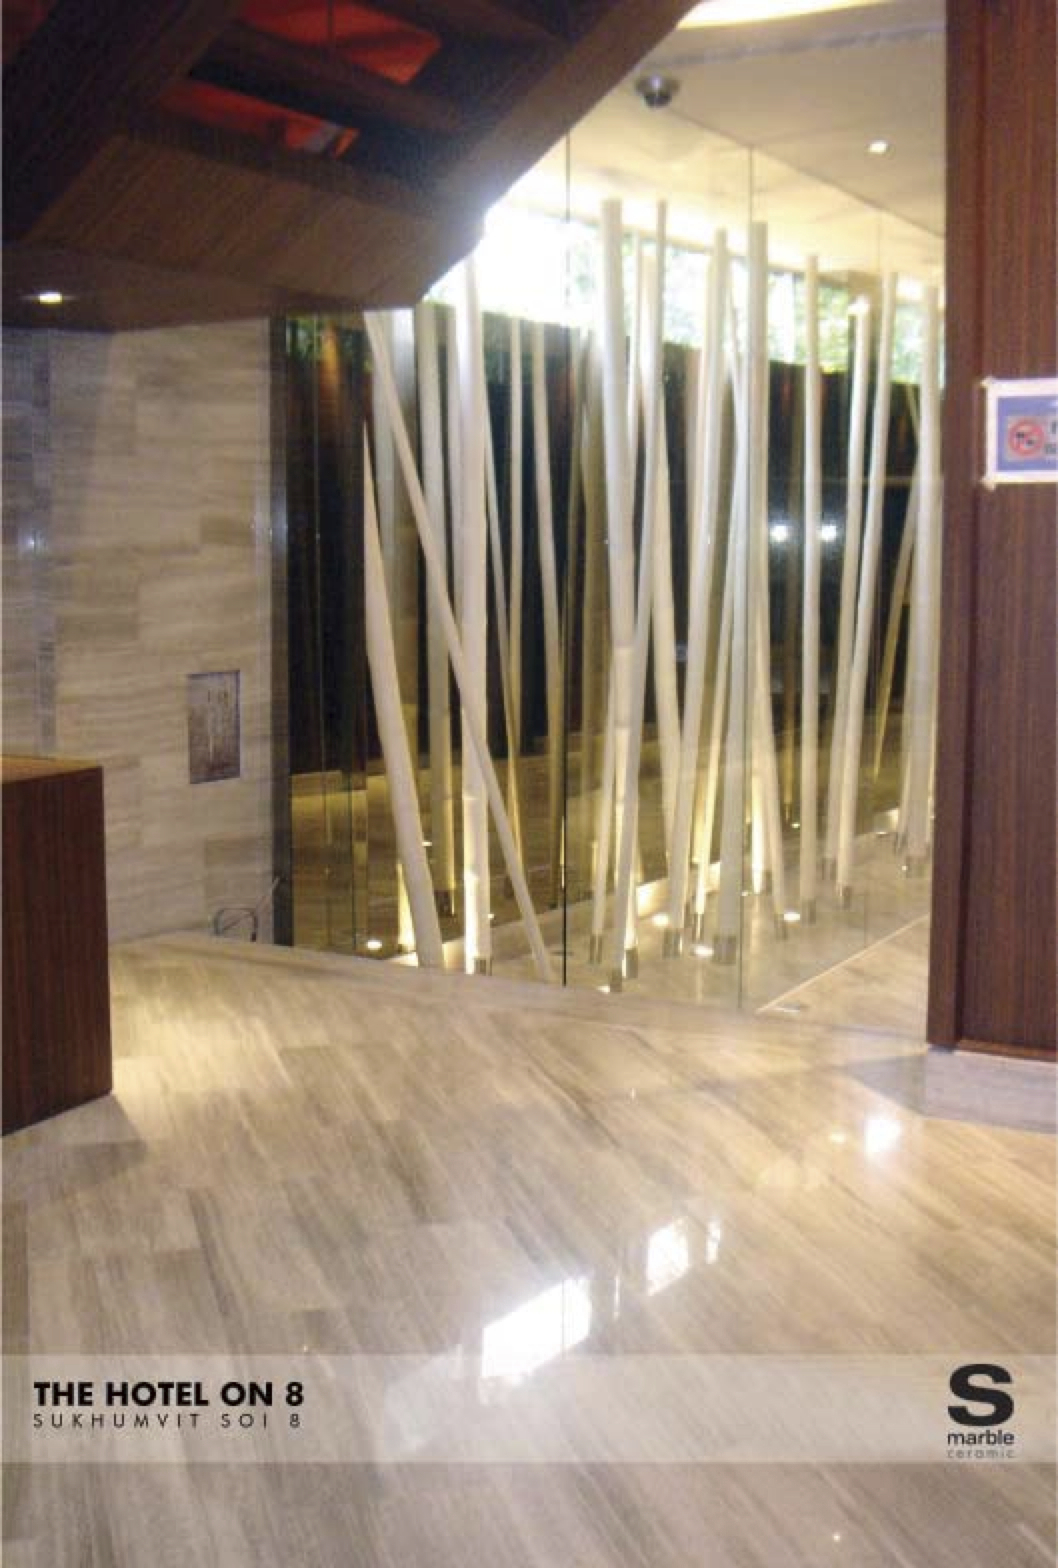 hotel on 8 grey travertine floor - Travertine Hotel 2015